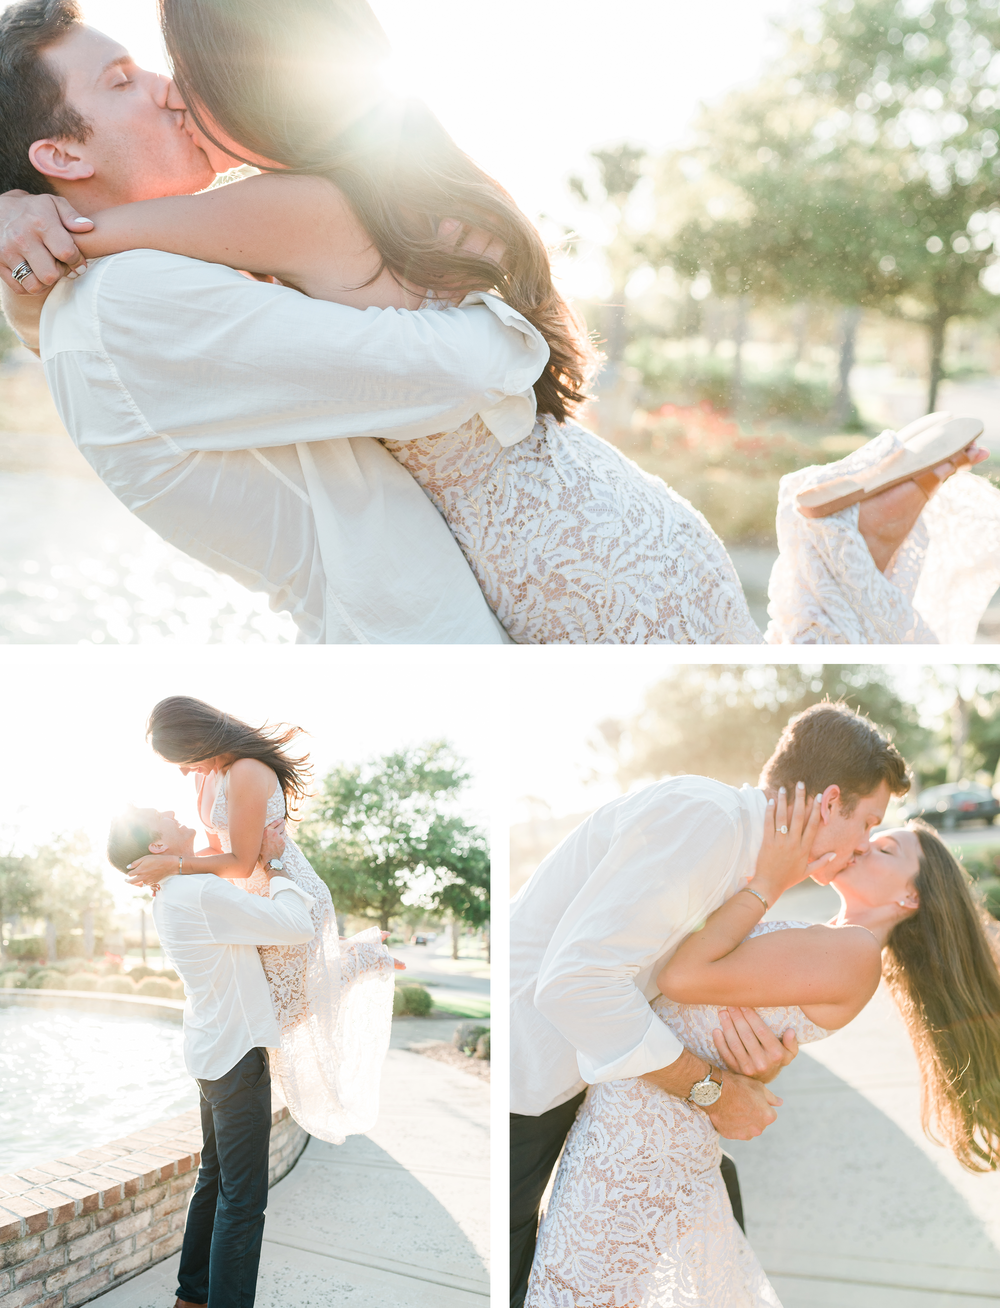 Evan Haley Engagement_Pawleys Island SC_Kristen Paige Photography_Gallery 9.png